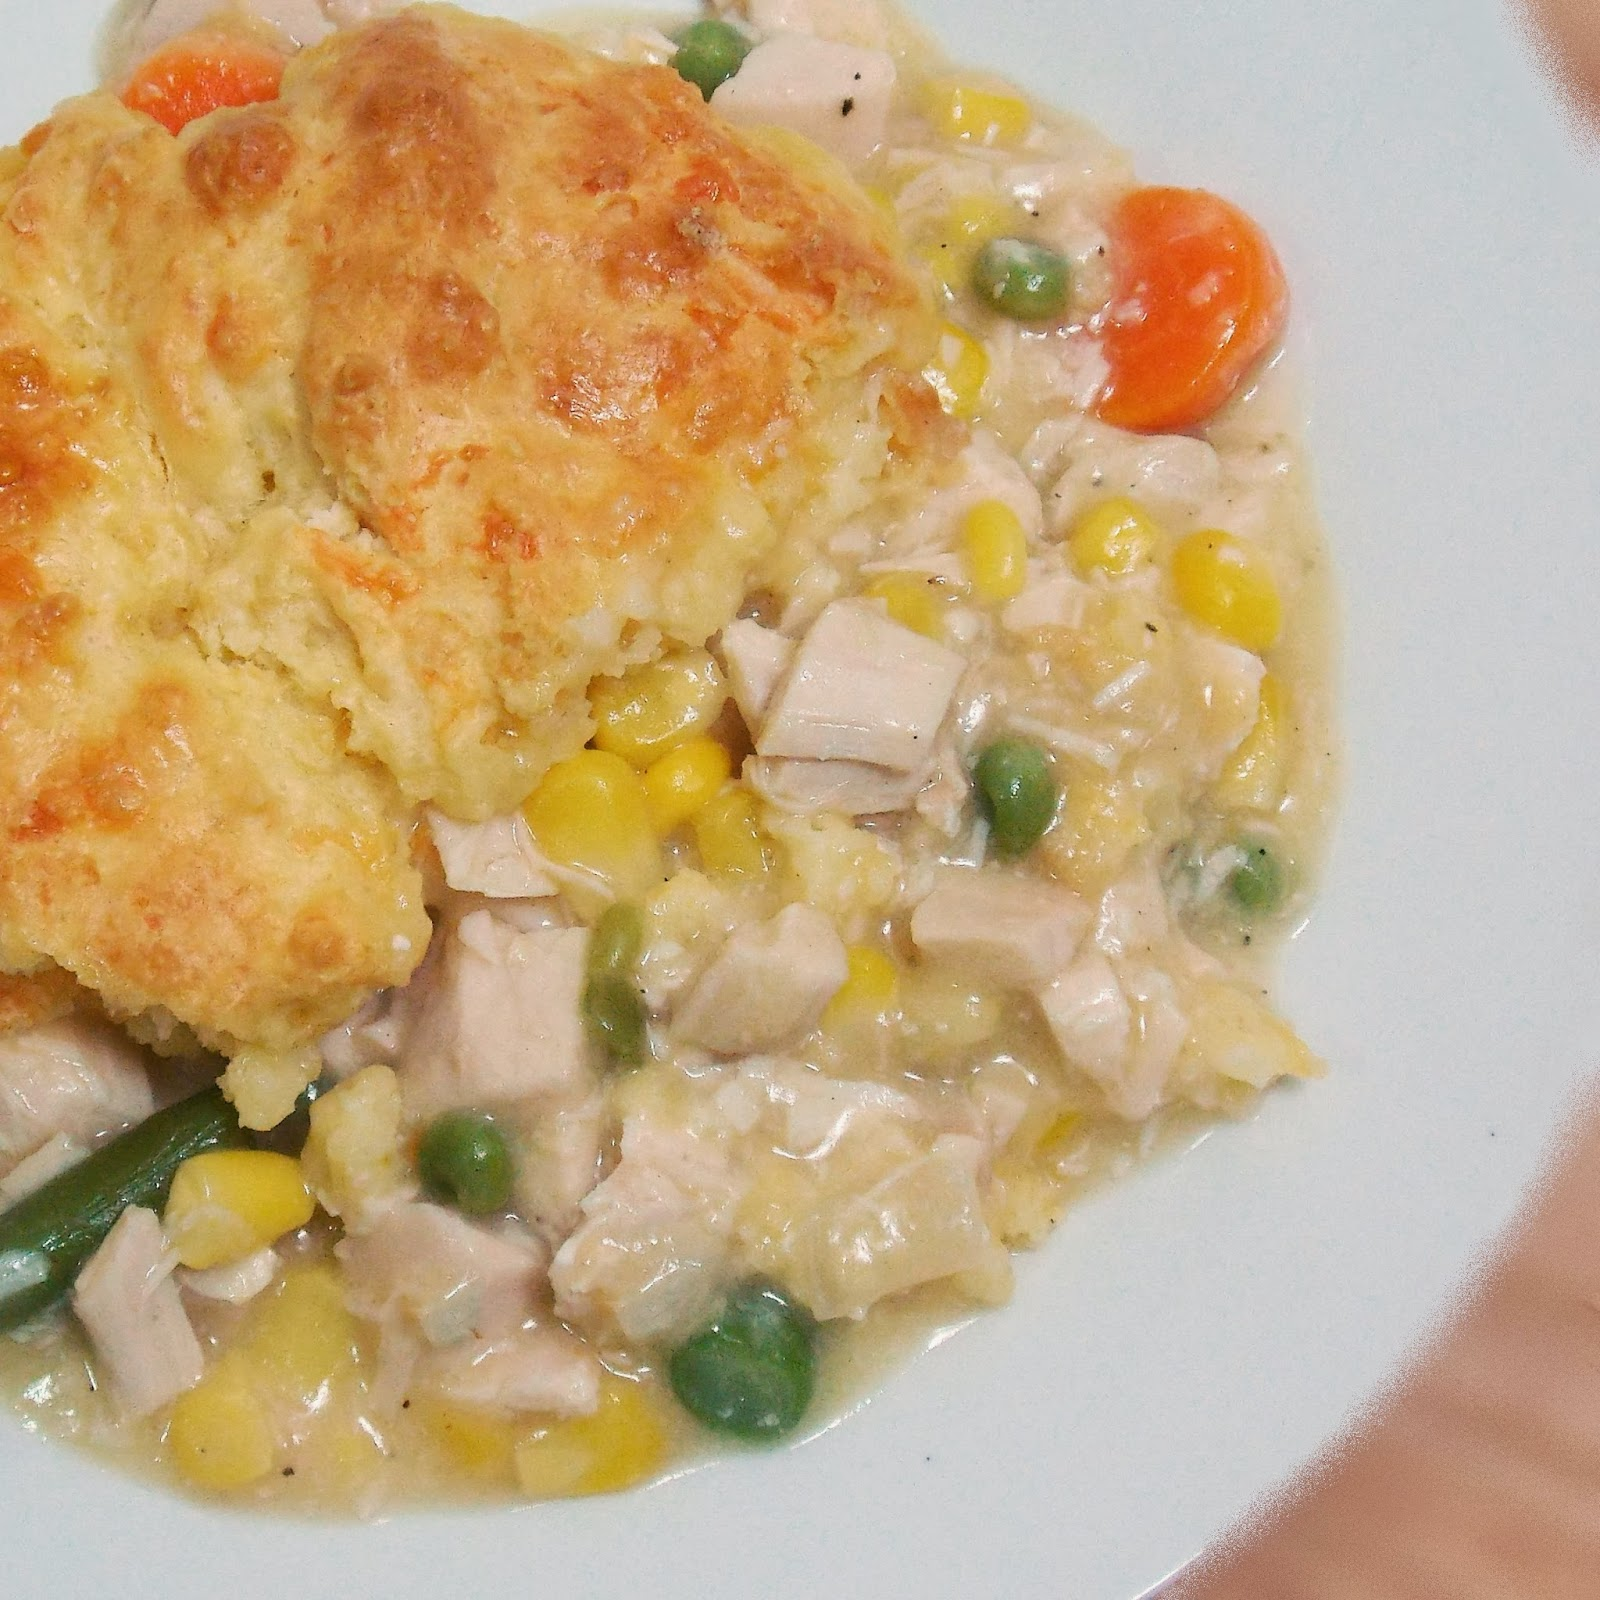 ... Honeybunch: Turkey Pot Pie with Cheddar Garlic Biscuit Topping